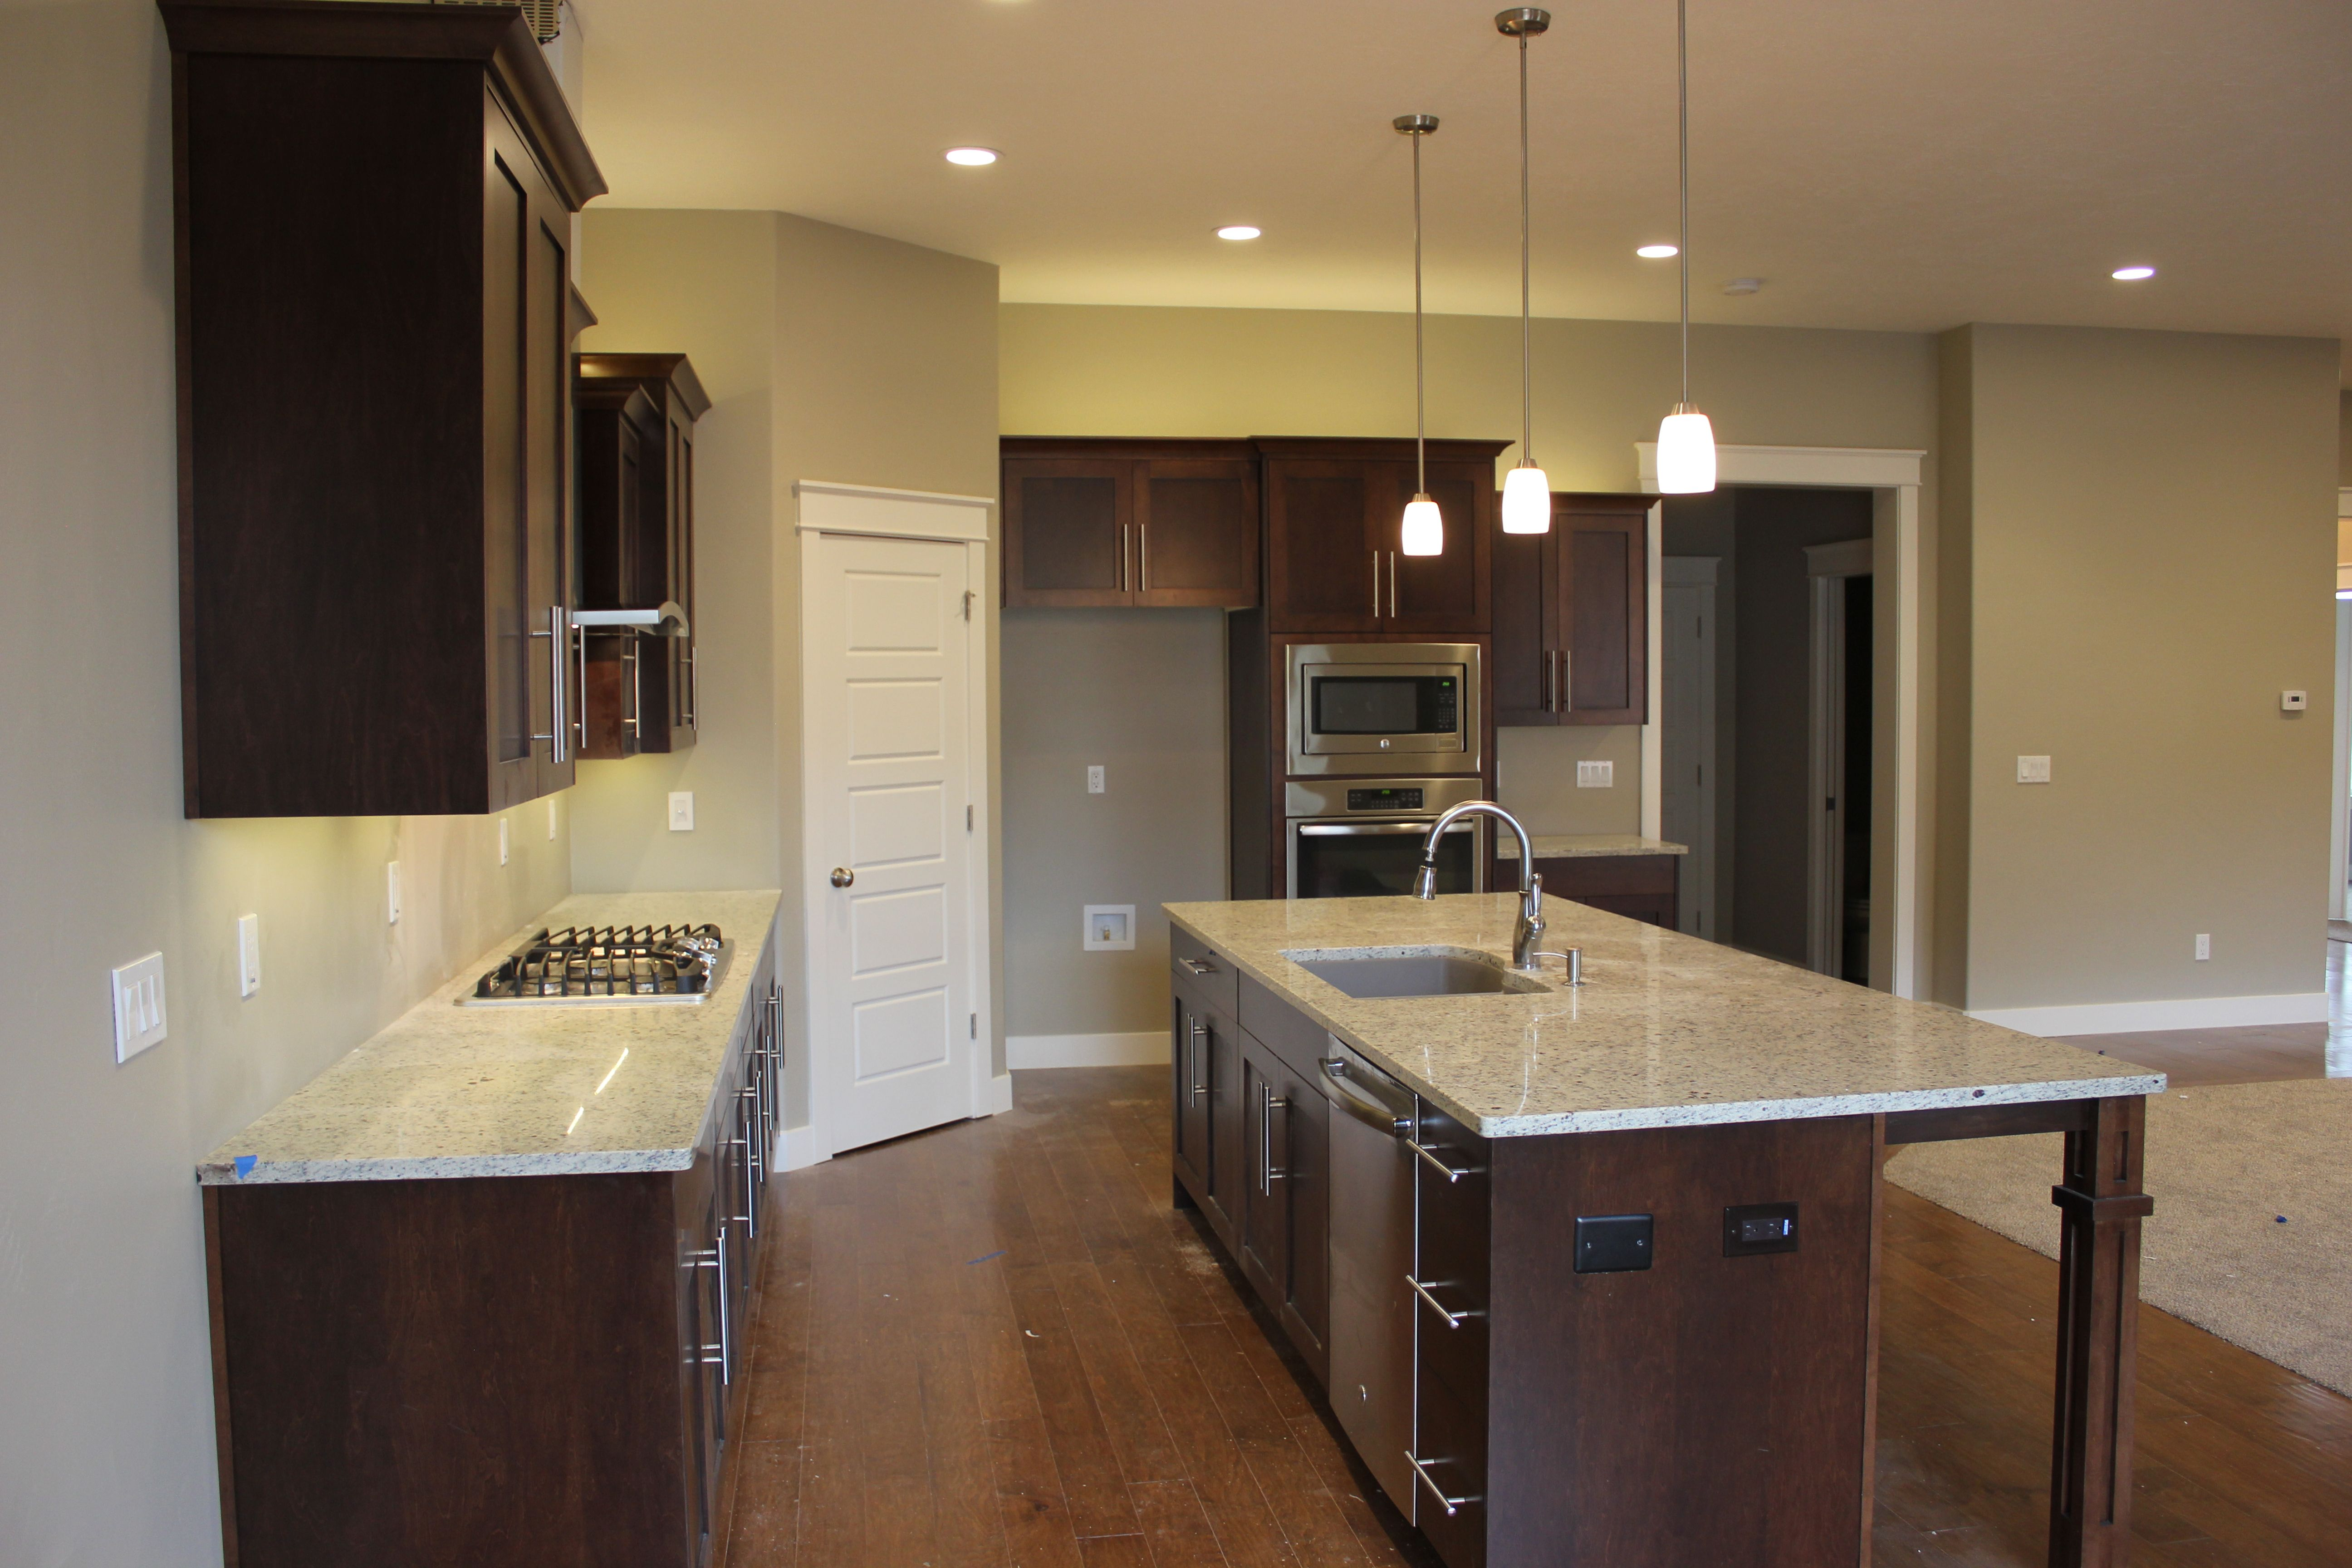 Pin By Brighton Homes On Brighton Kitchens Maple Cabinets Sweet Home Grey Walls